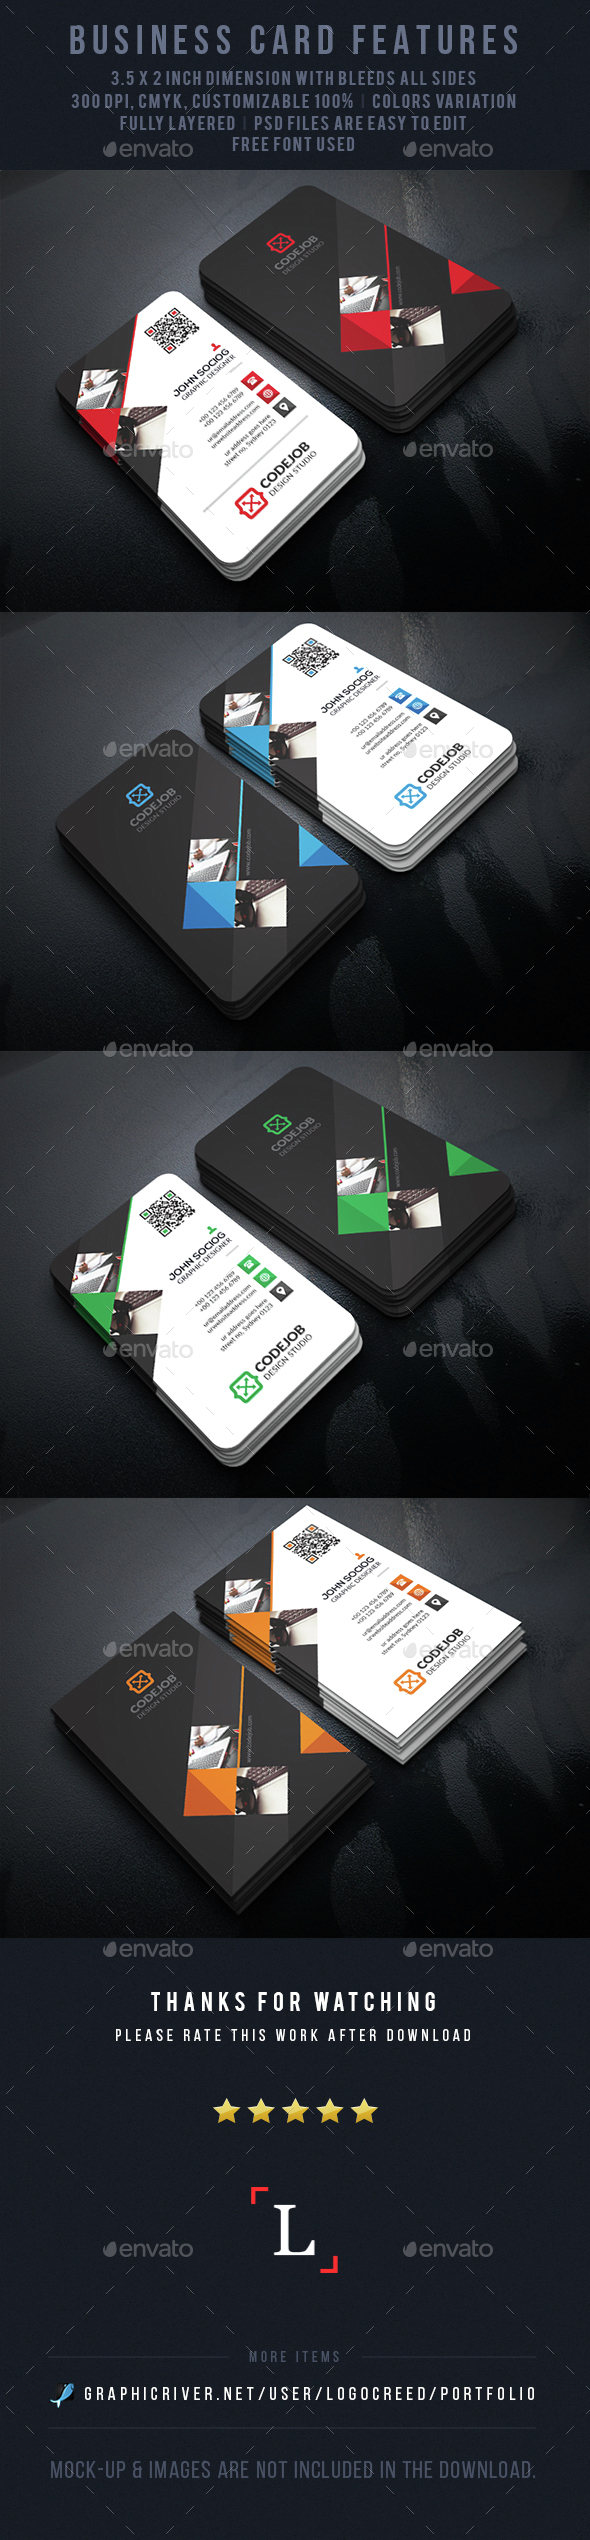 Soft Corporate Business Card - Business Cards Print Templates